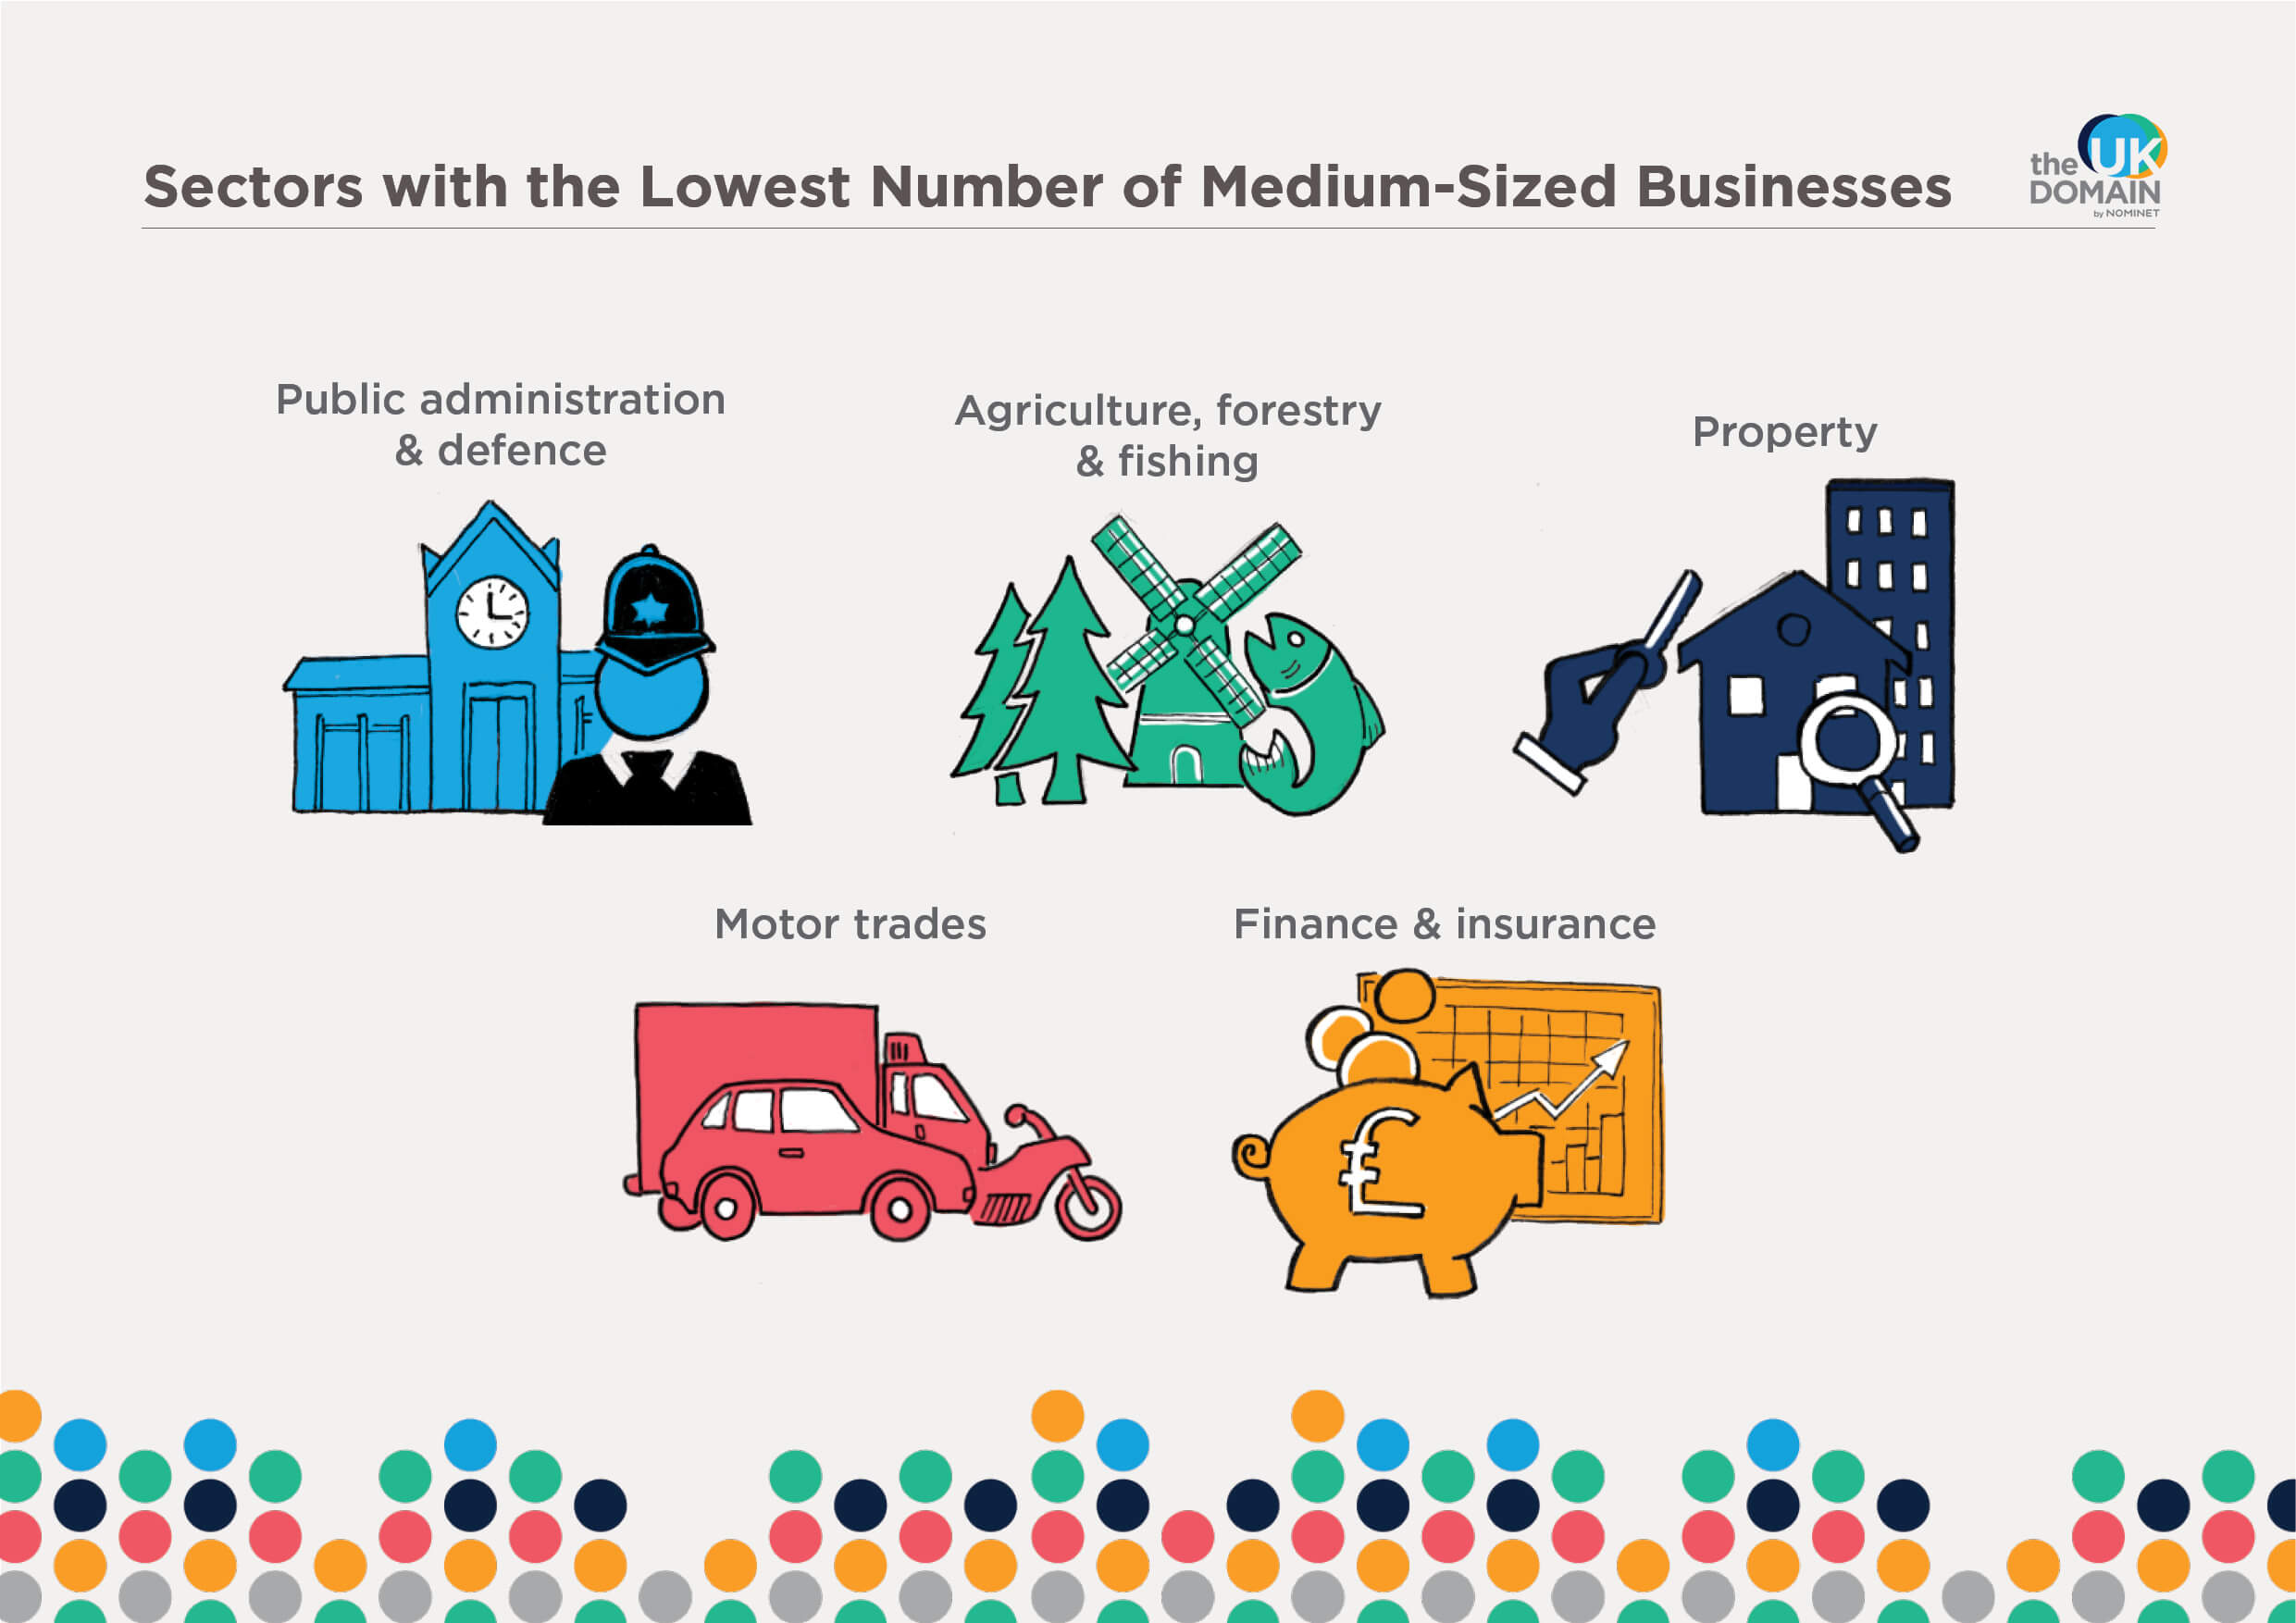 Sectors with the lowest number of medium-size businesses